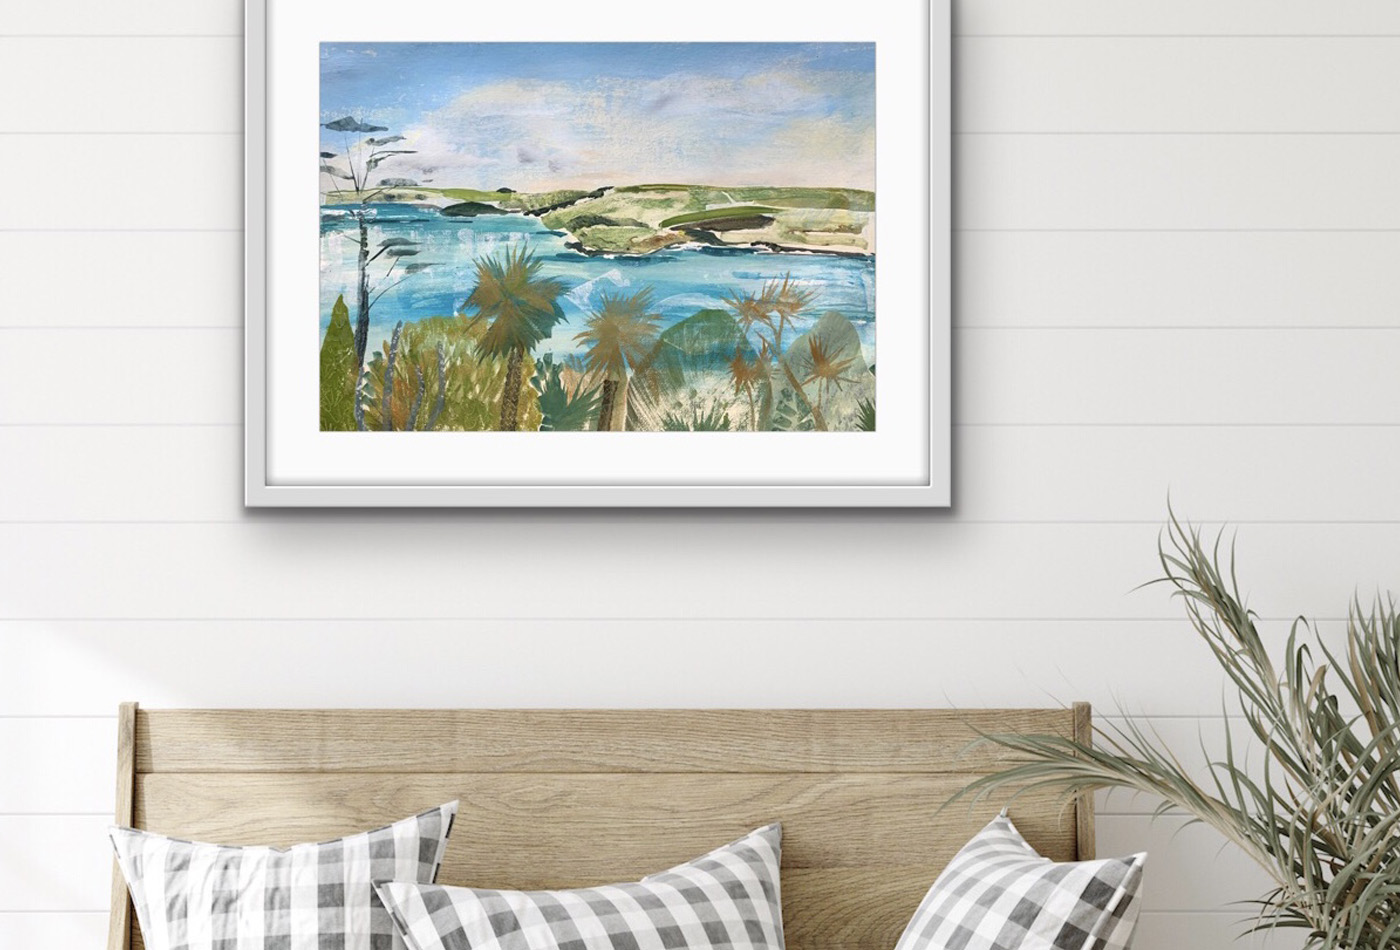 The Brownston Gallery art - choosing art for your holiday home